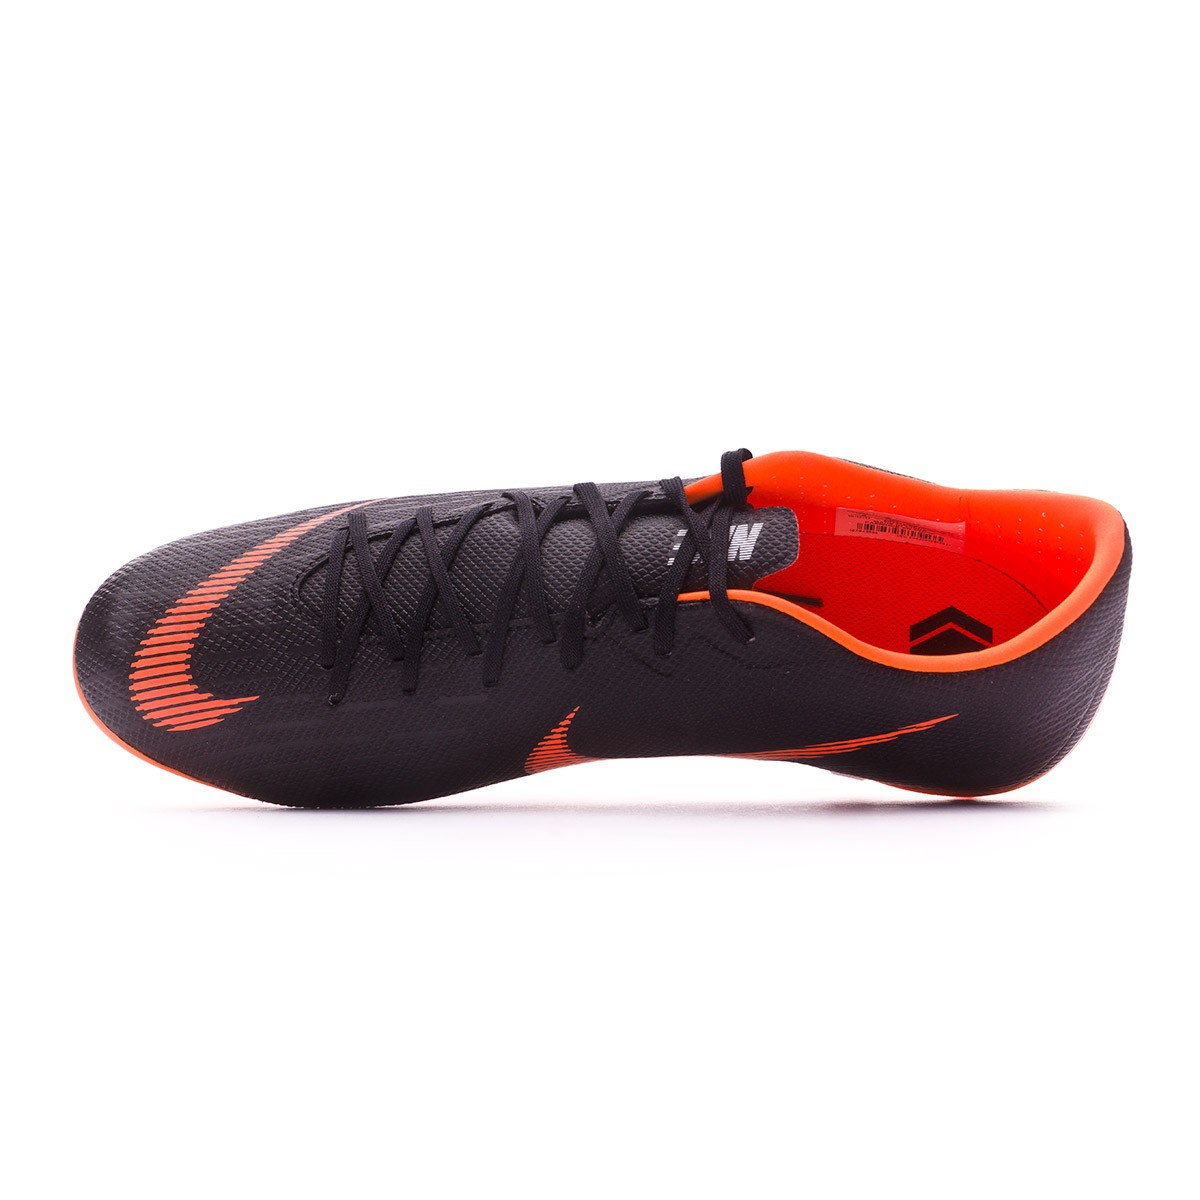 ... Vapor XII Academy MG Black-Total orange-White. CATEGORY. Football Boots  · Nike